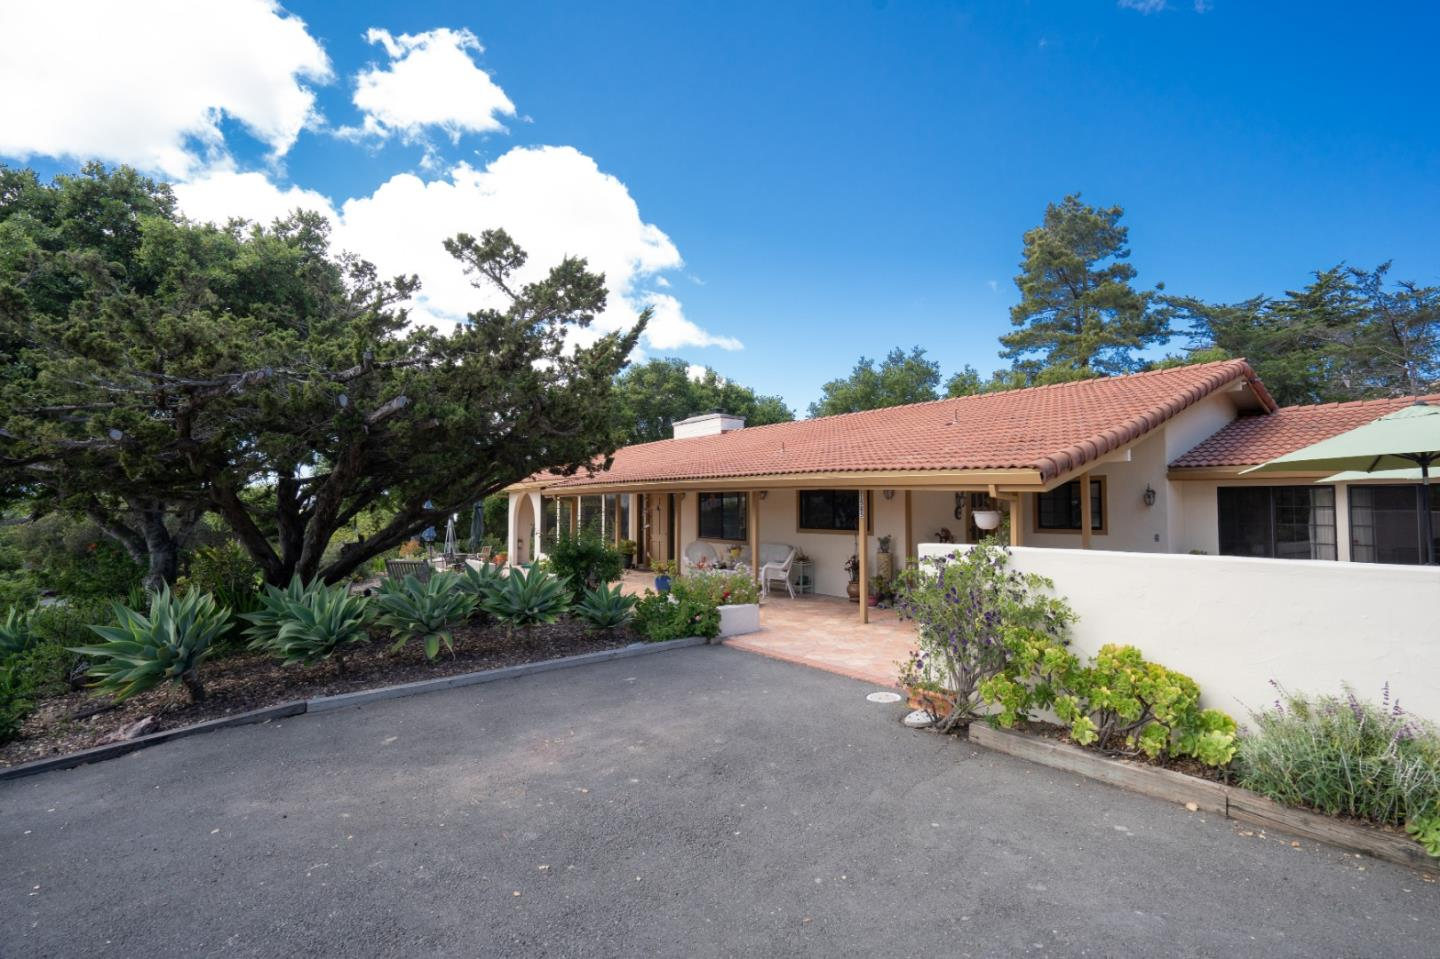 Property for sale at 11585 Mccarthy RD, Carmel Valley,  California 93924